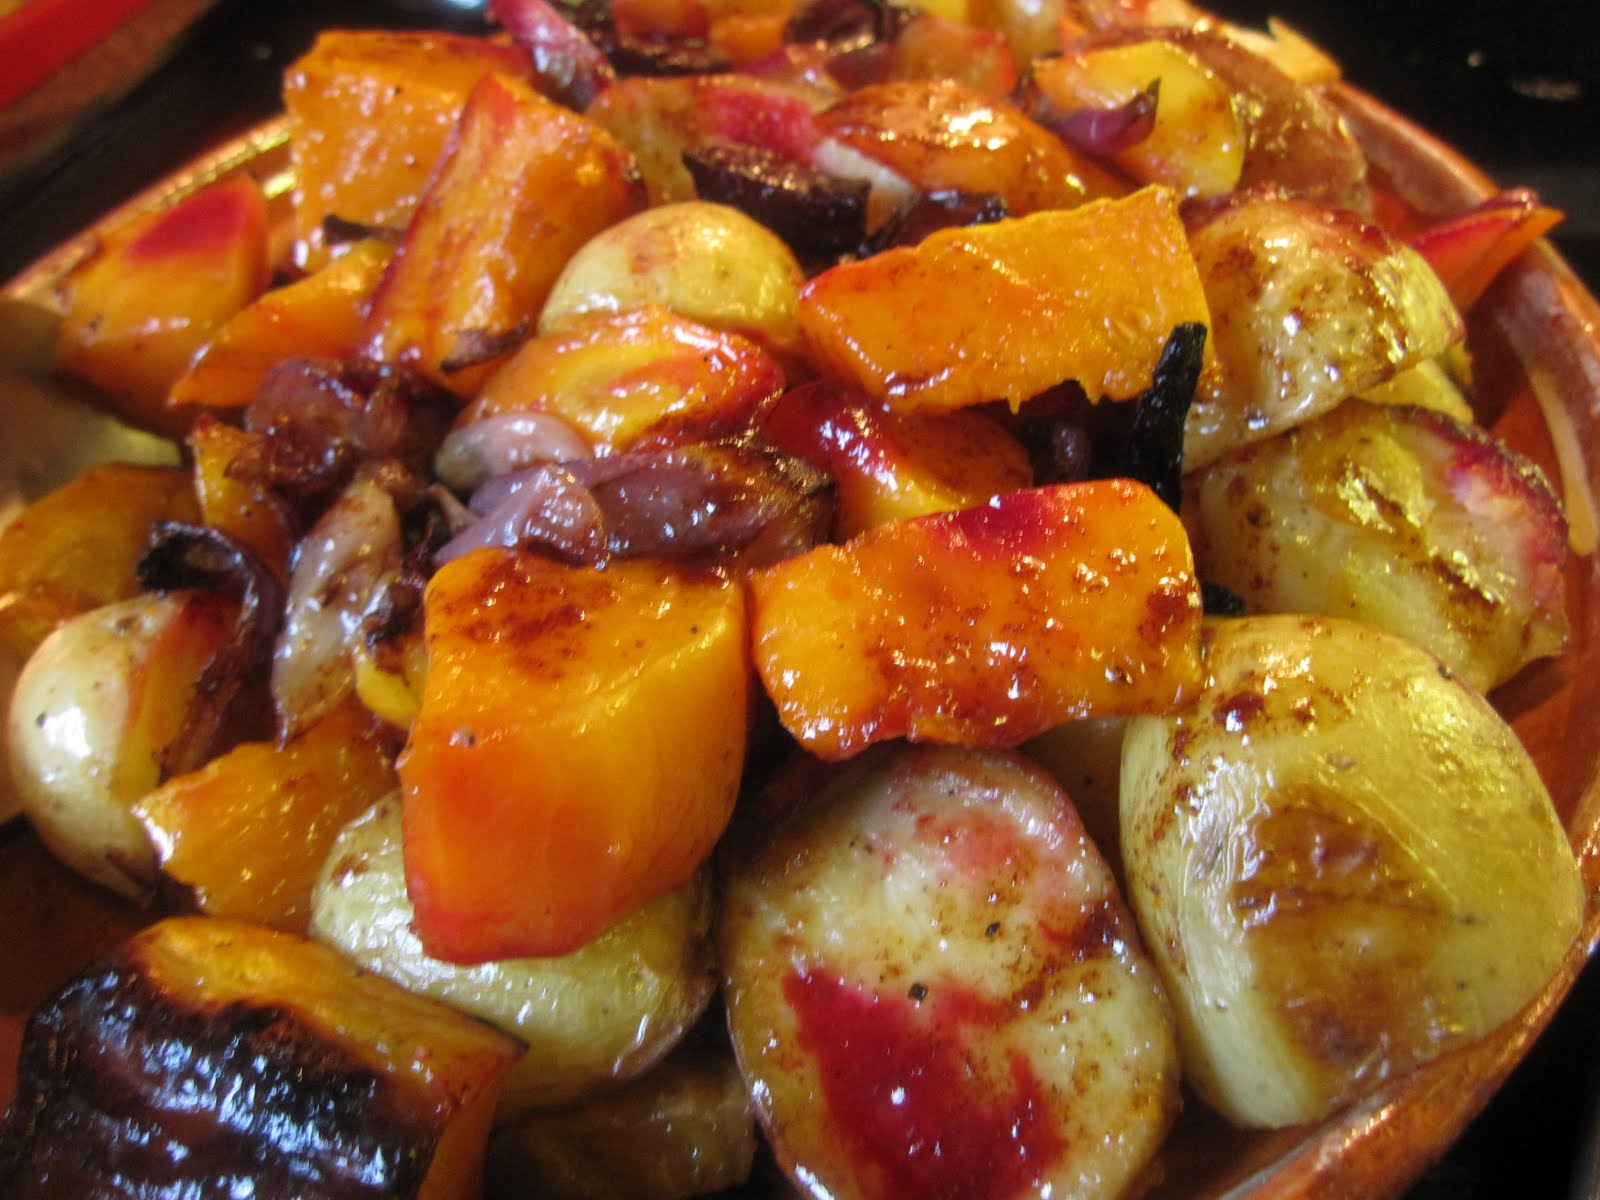 ... from 4EveryKitchen: Roasted Vegetables with Maple Syrup Dressing